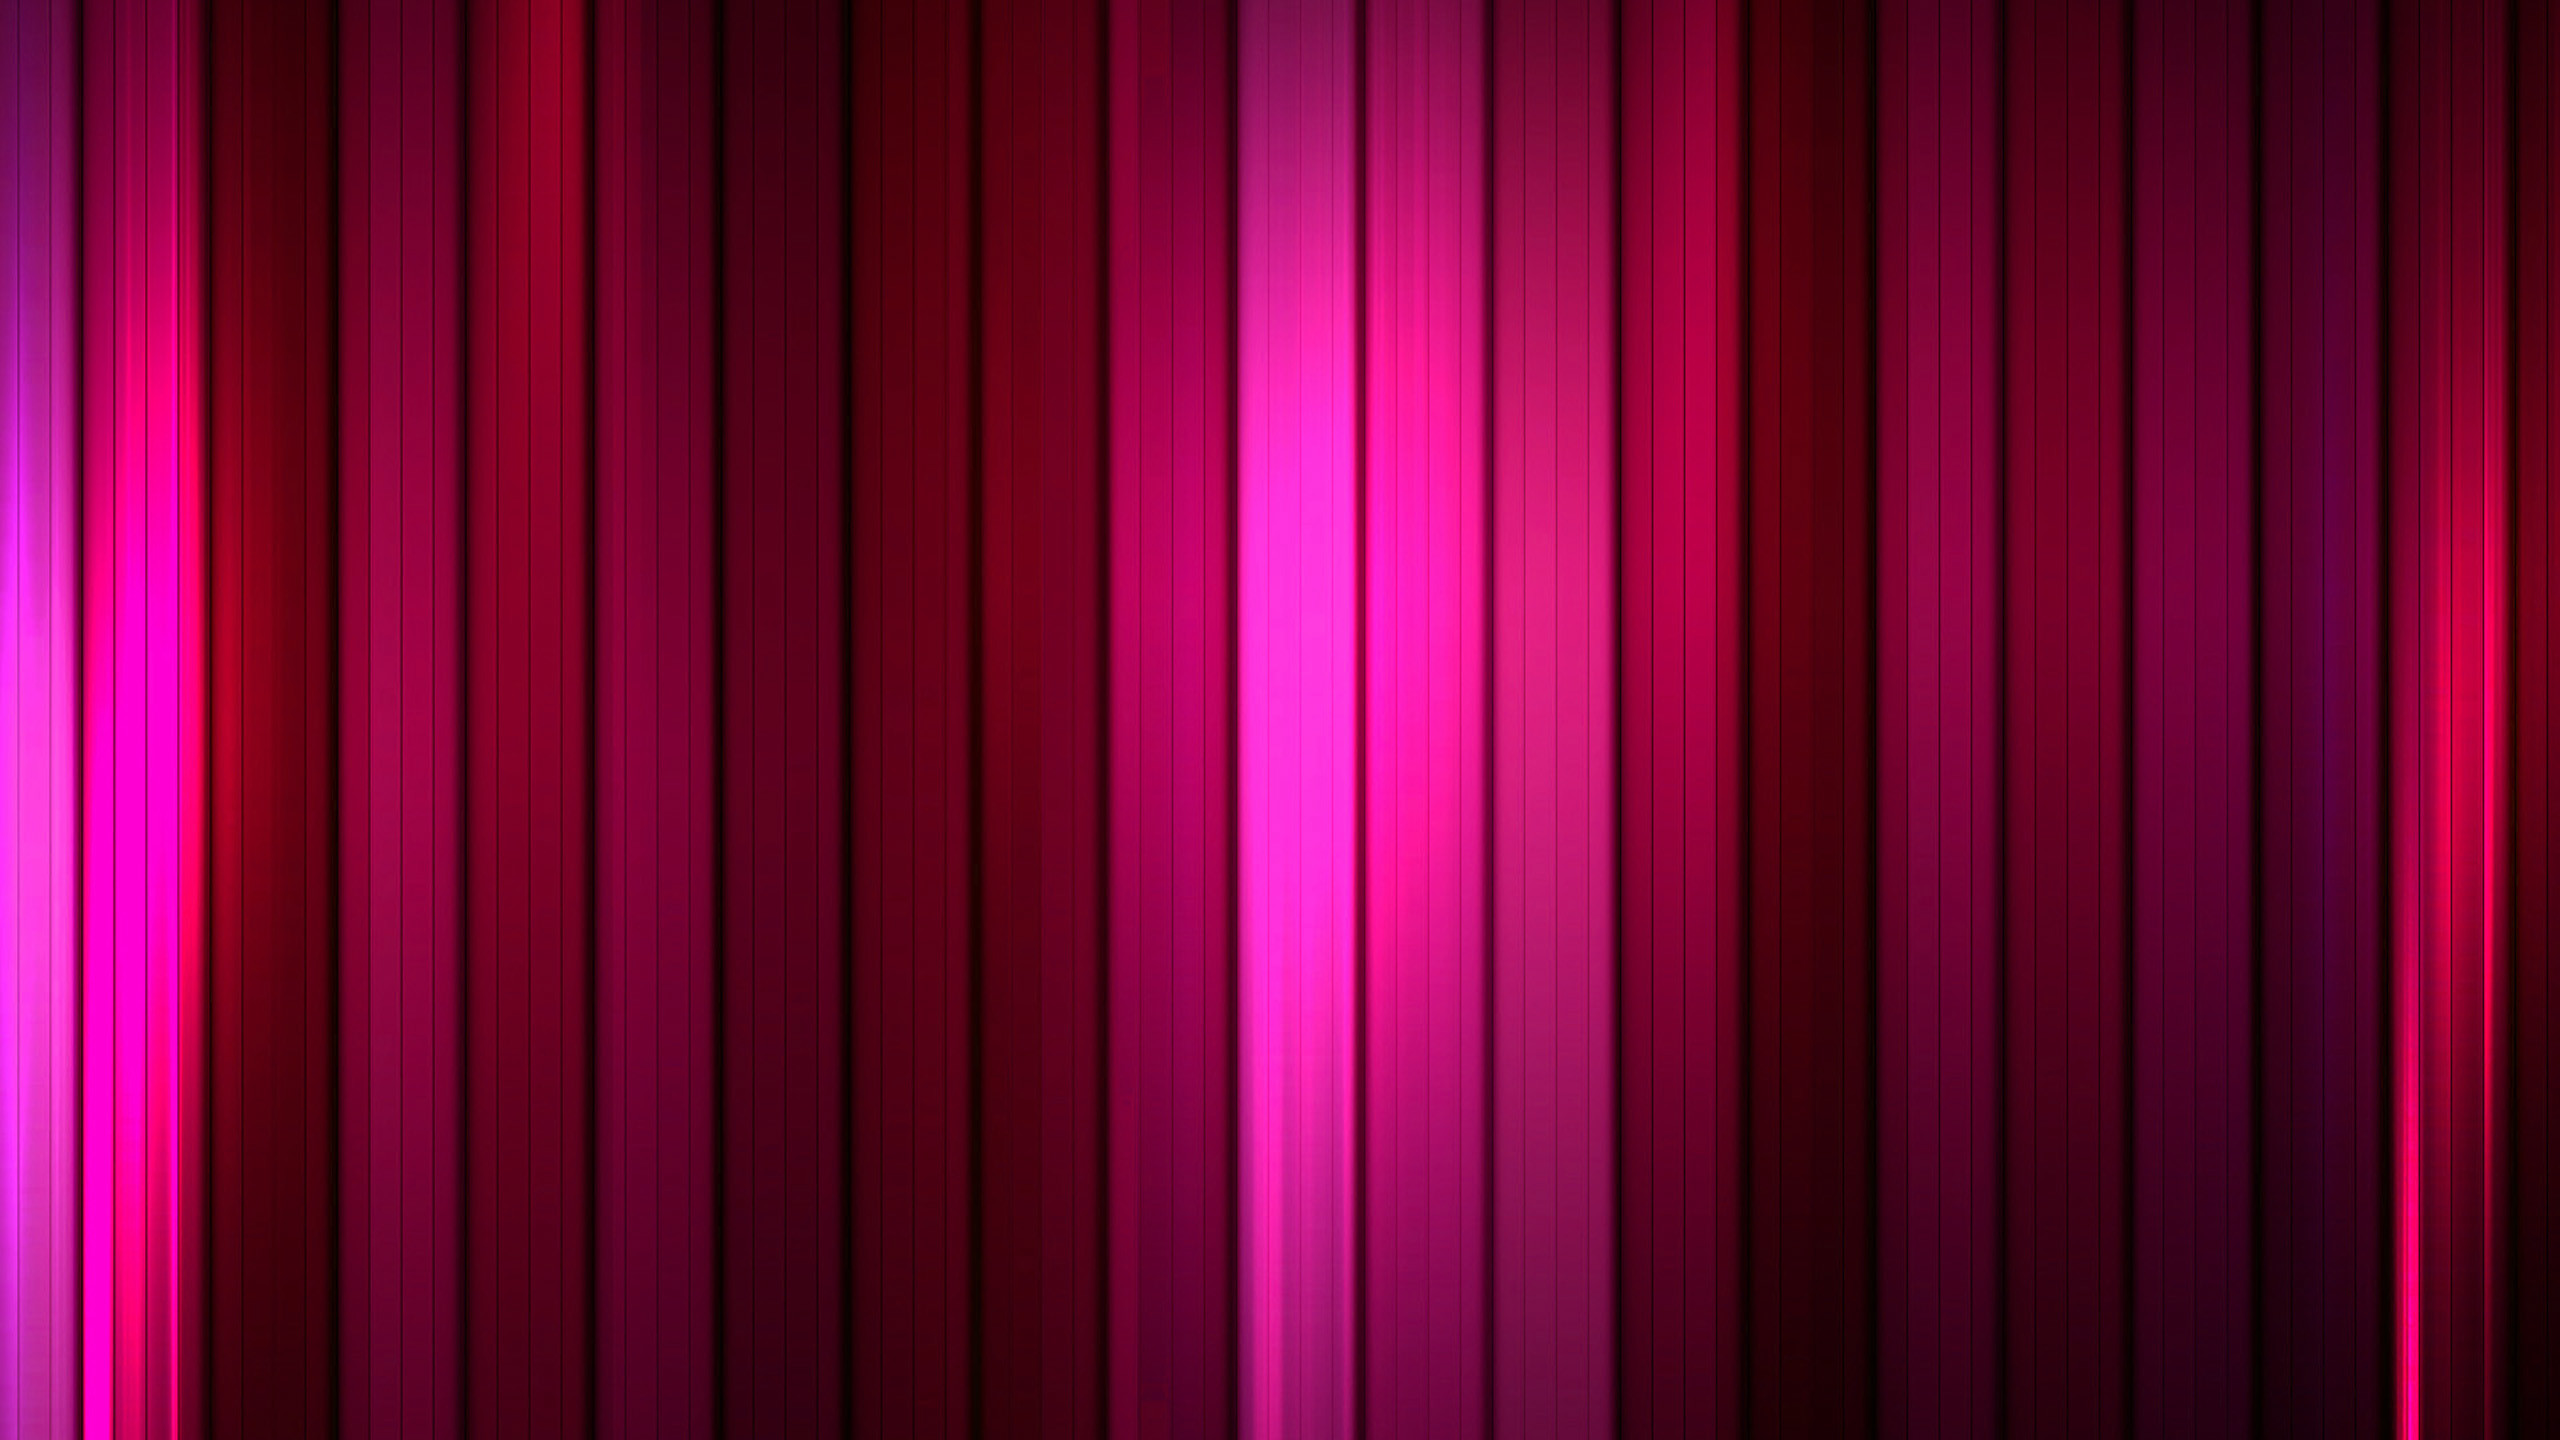 2560x1440 pink stripes wallpaper background 8806